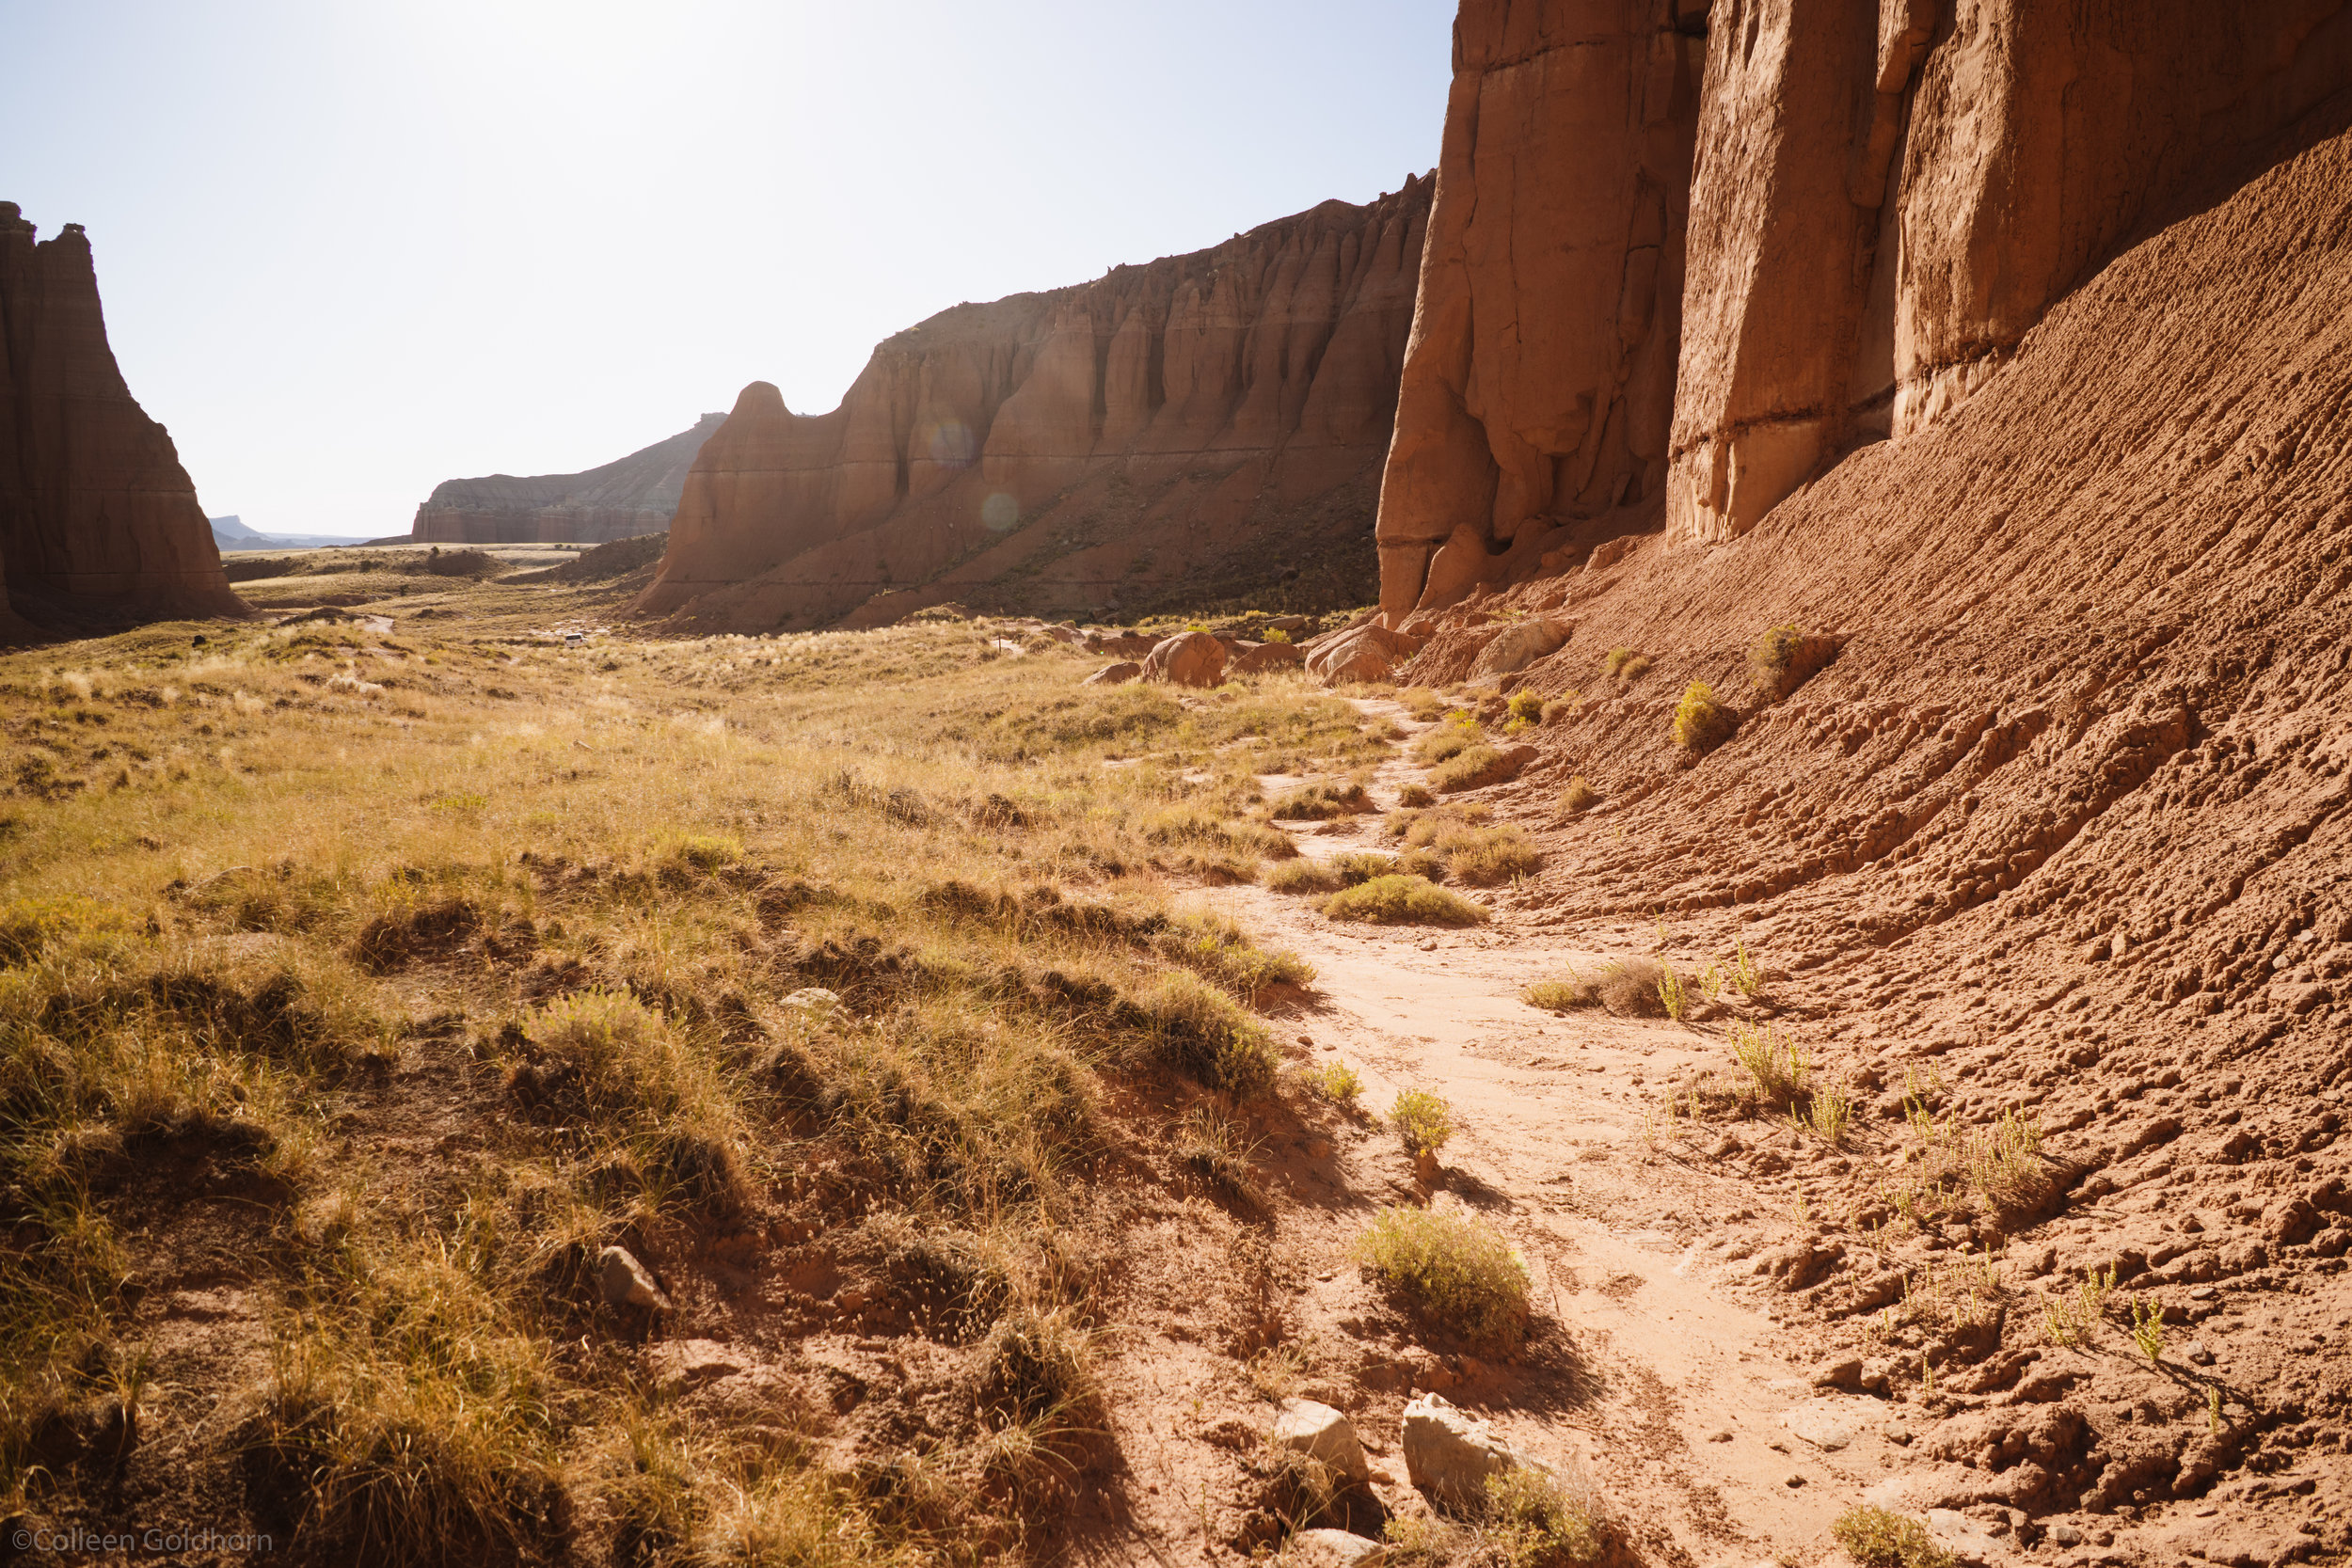 The silence of the Capitol Reef backcountry was almost deafening. With no wind, large plants, or day time animals to make noise, it was the the most quiet place I have ever experienced.